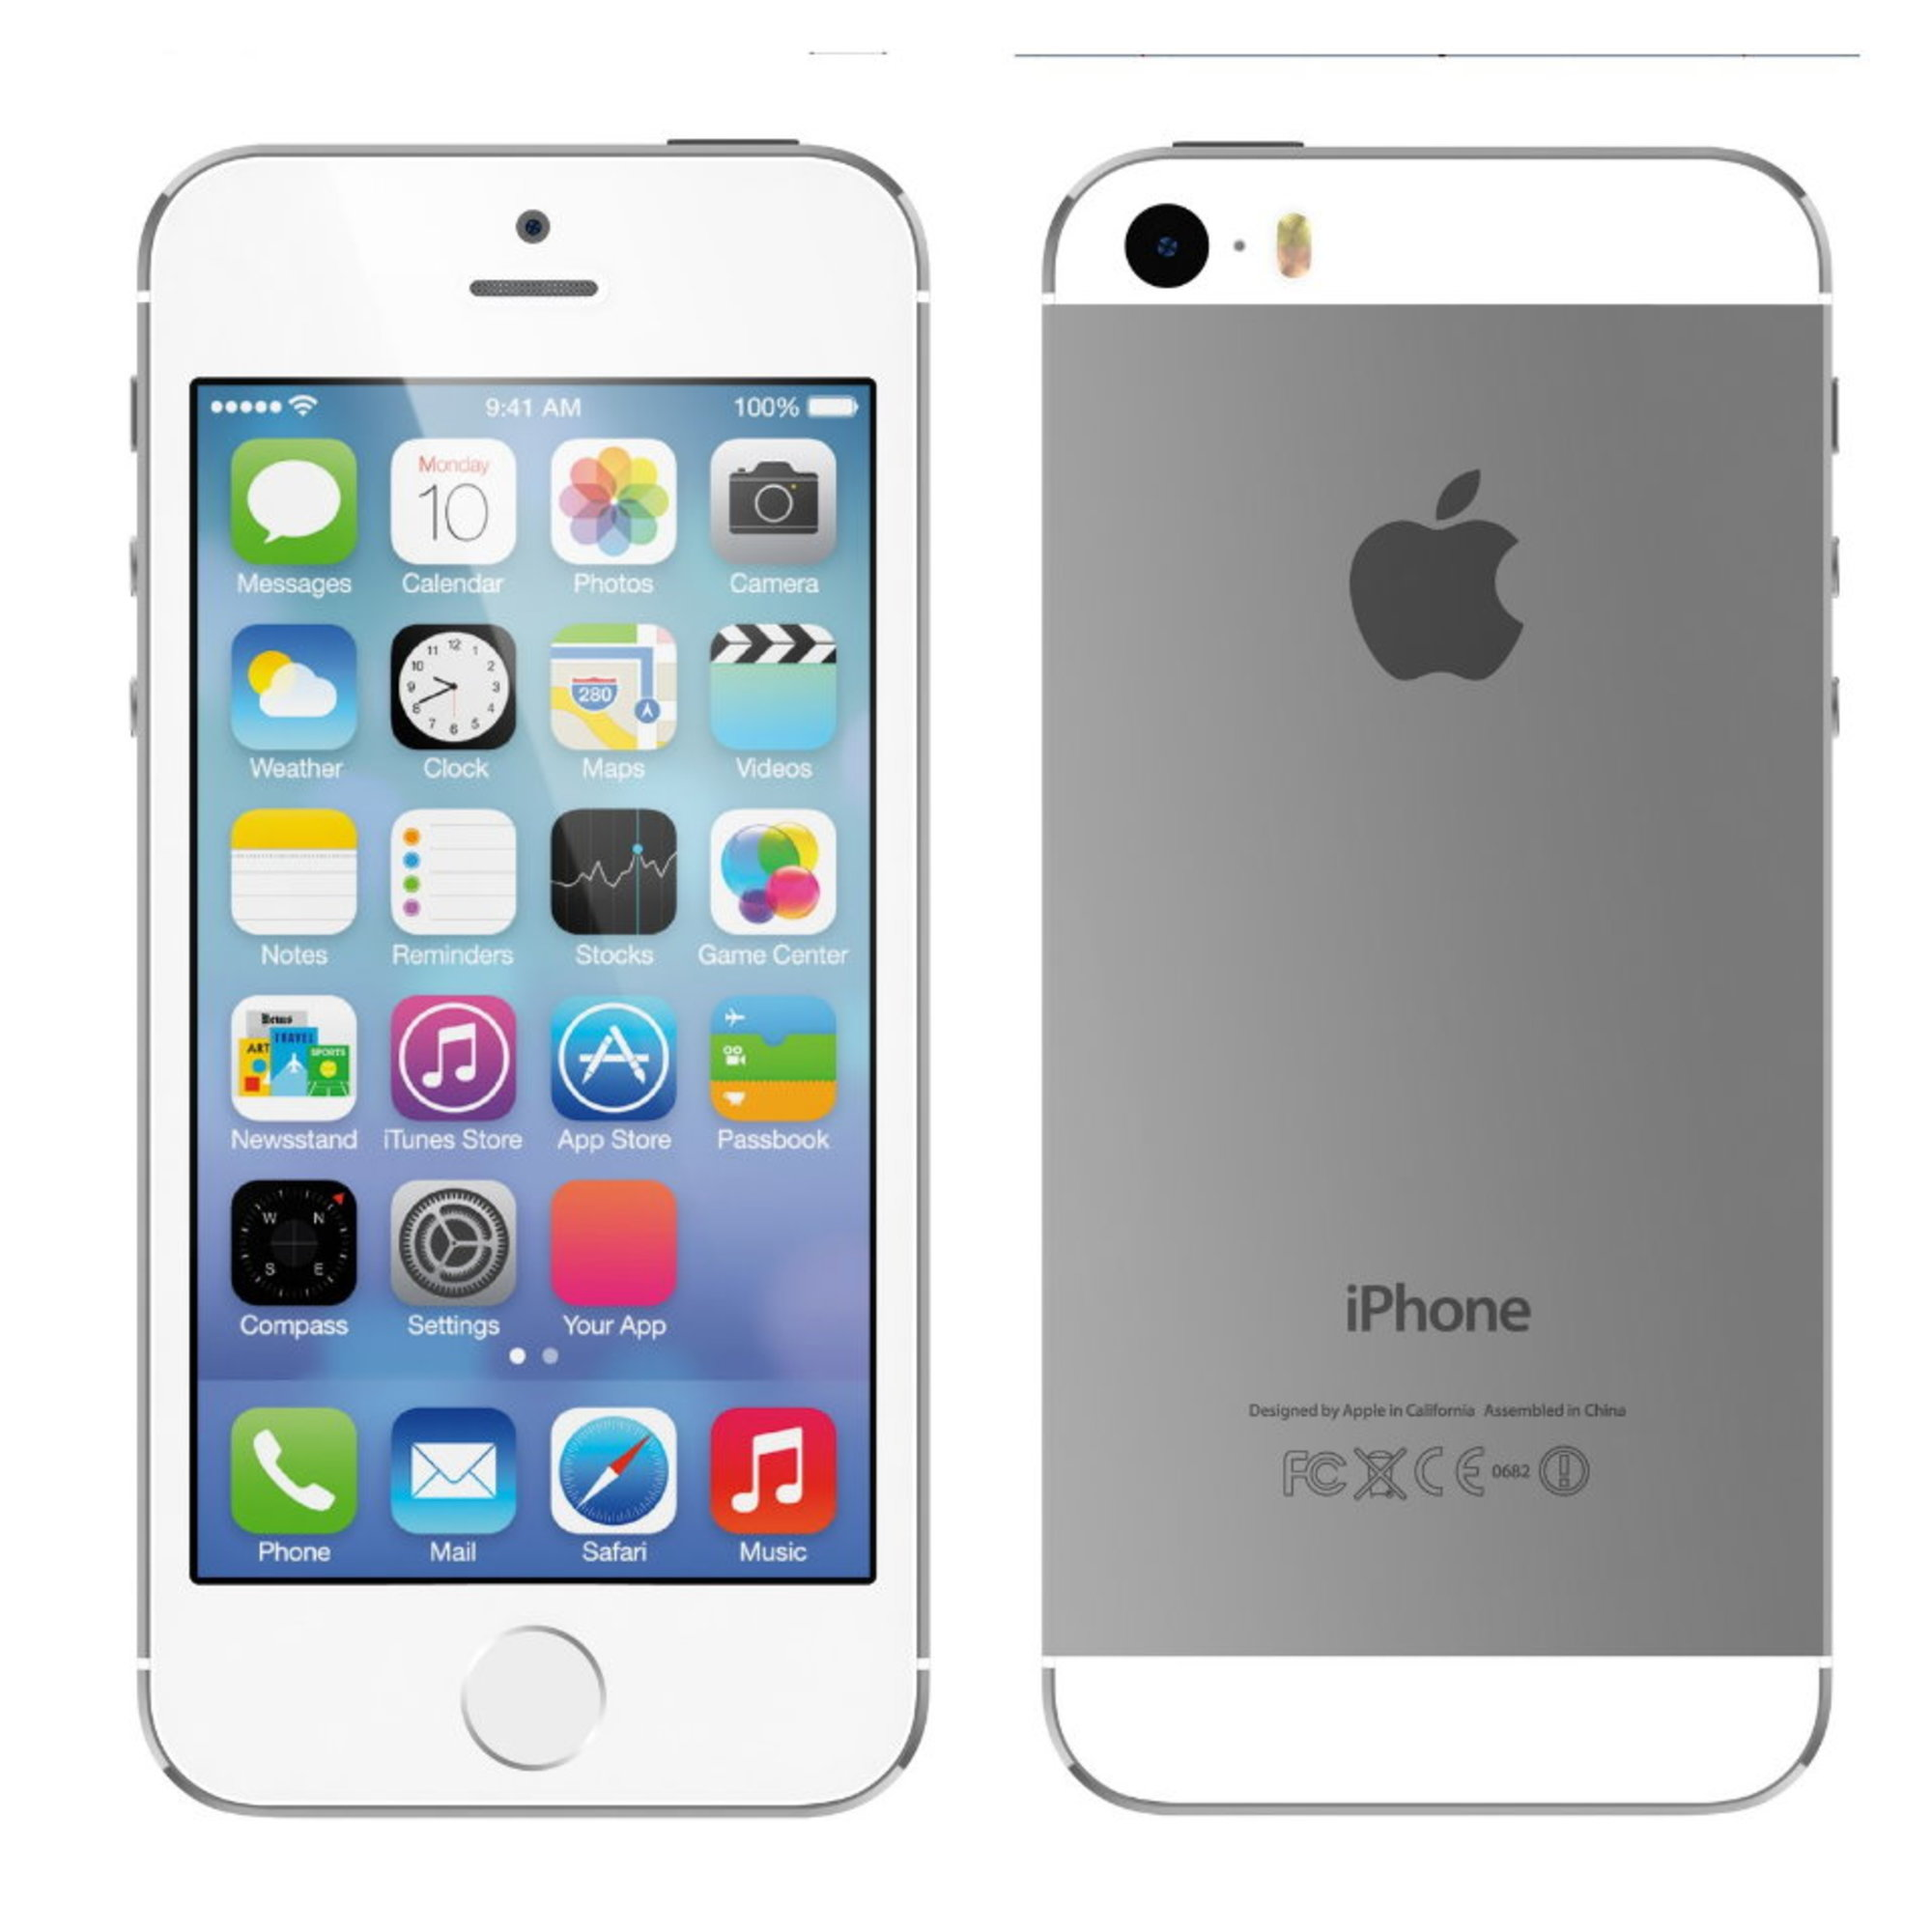 iphone 5s unlocked apple iphone 5s 16gb unlocked gsm lte dualcore 8mp phone 1045